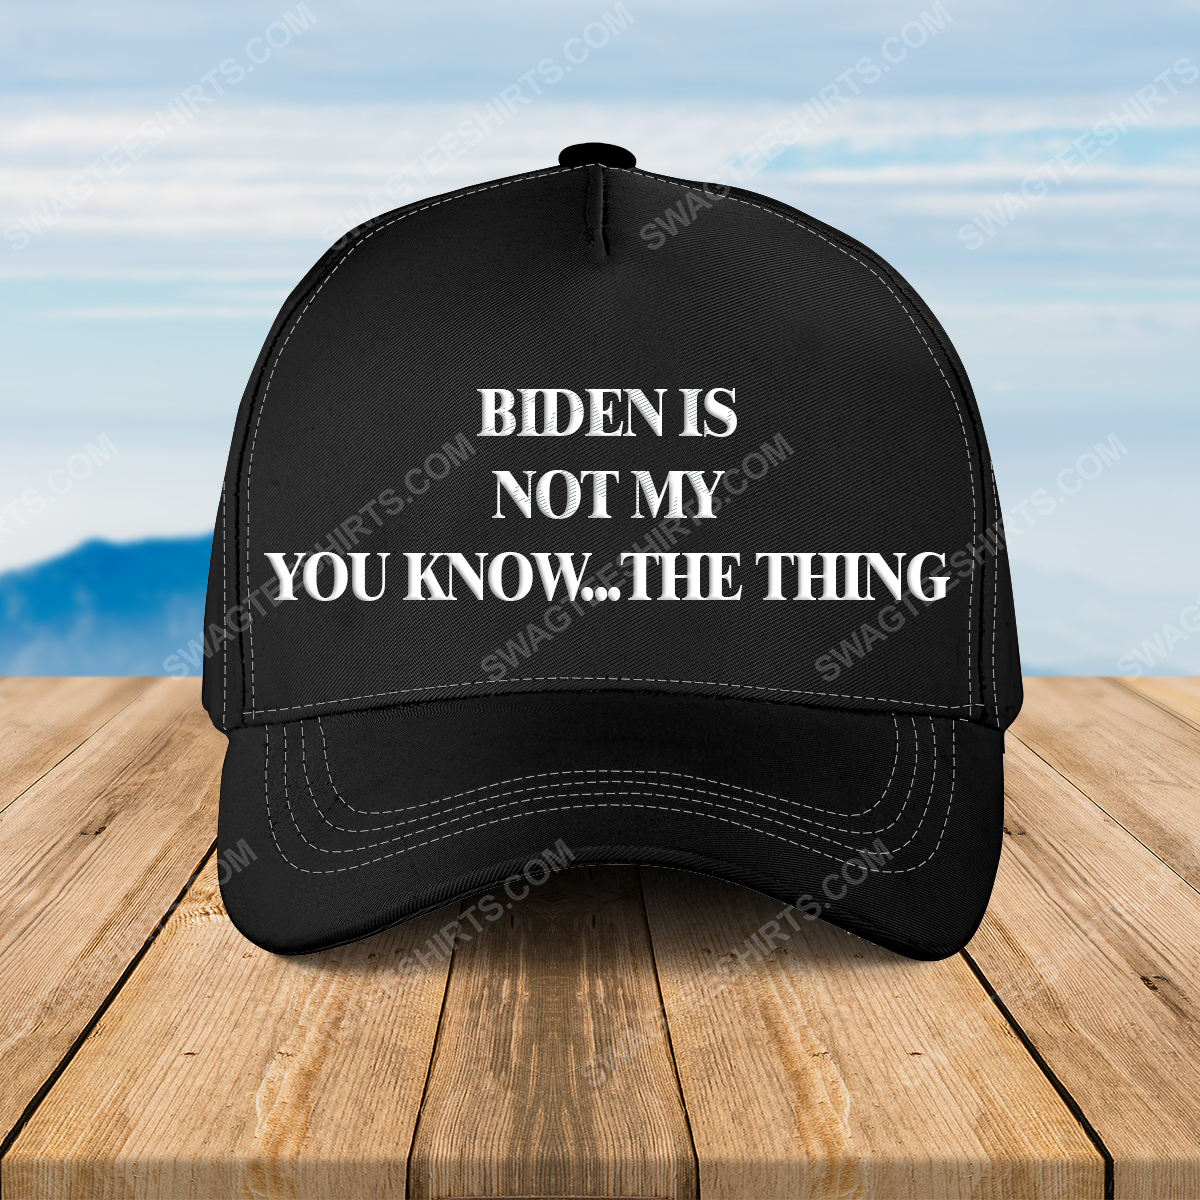 Biden is not my you know the thing full print classic hat 1 - Copy